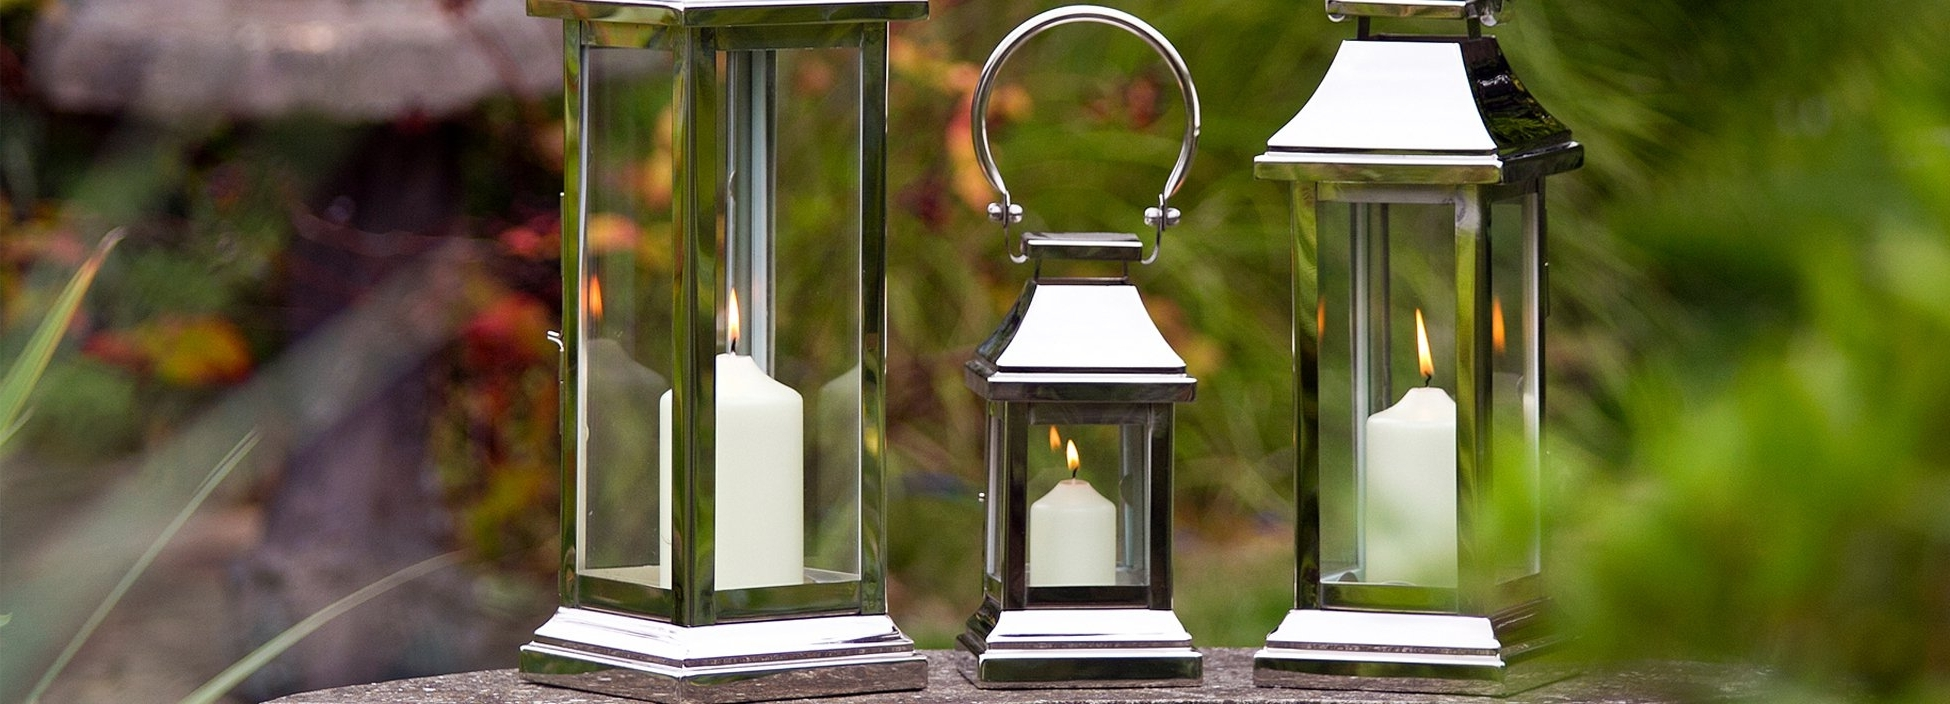 Outdoor Lanterns And Candles Regarding 2018 Indoor Candle Lanterns & Garden Lanterns (View 11 of 20)